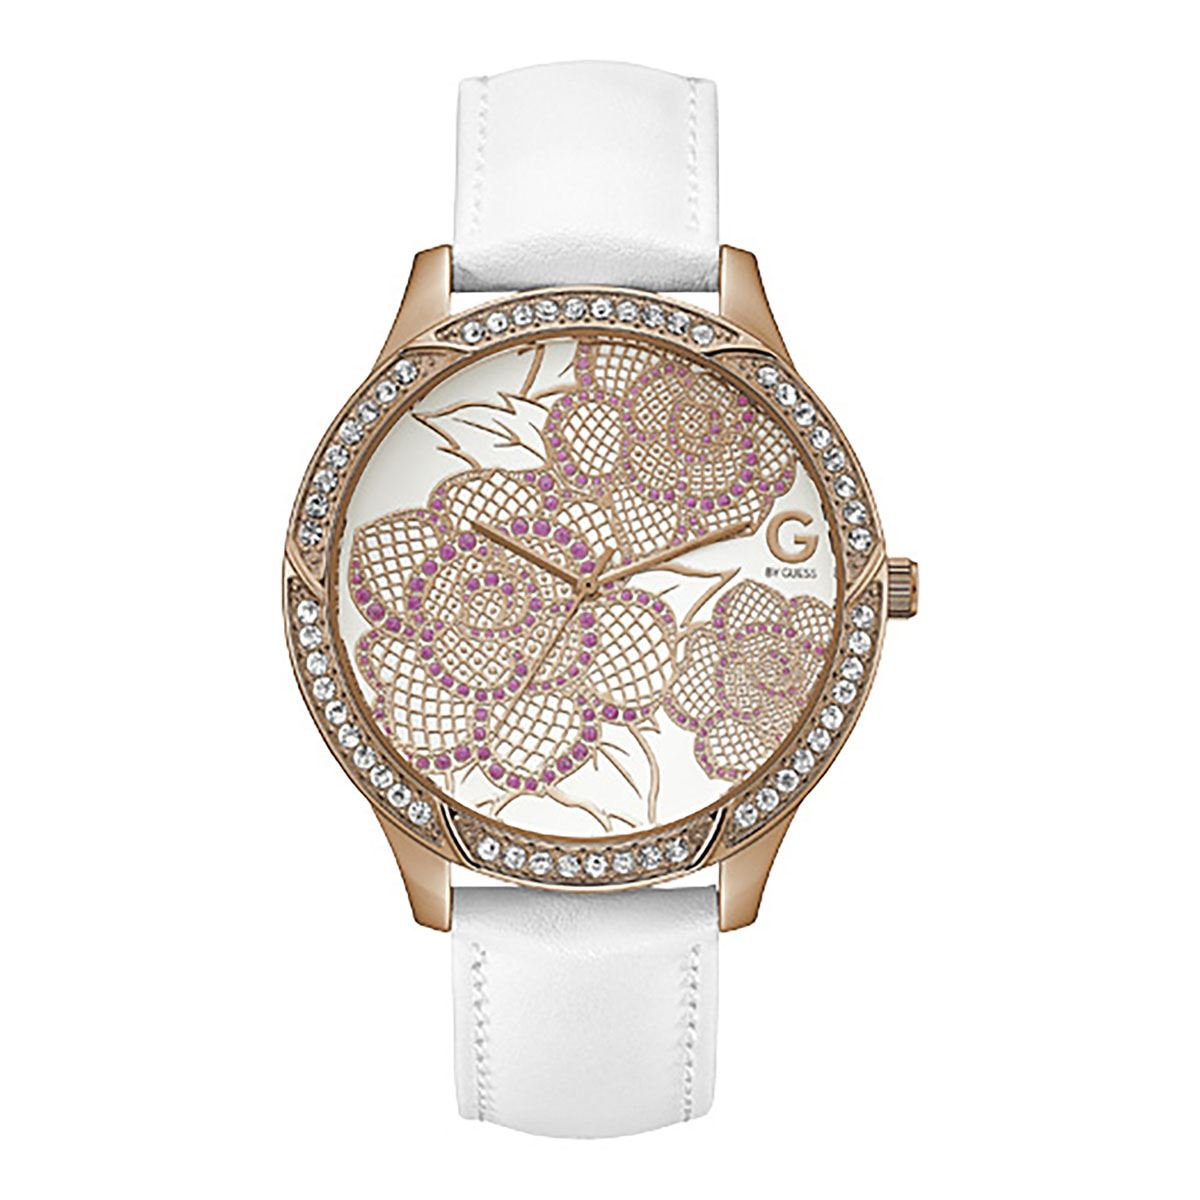 Reloj  g by guess dama bouquet g94085l1  - Sanborns